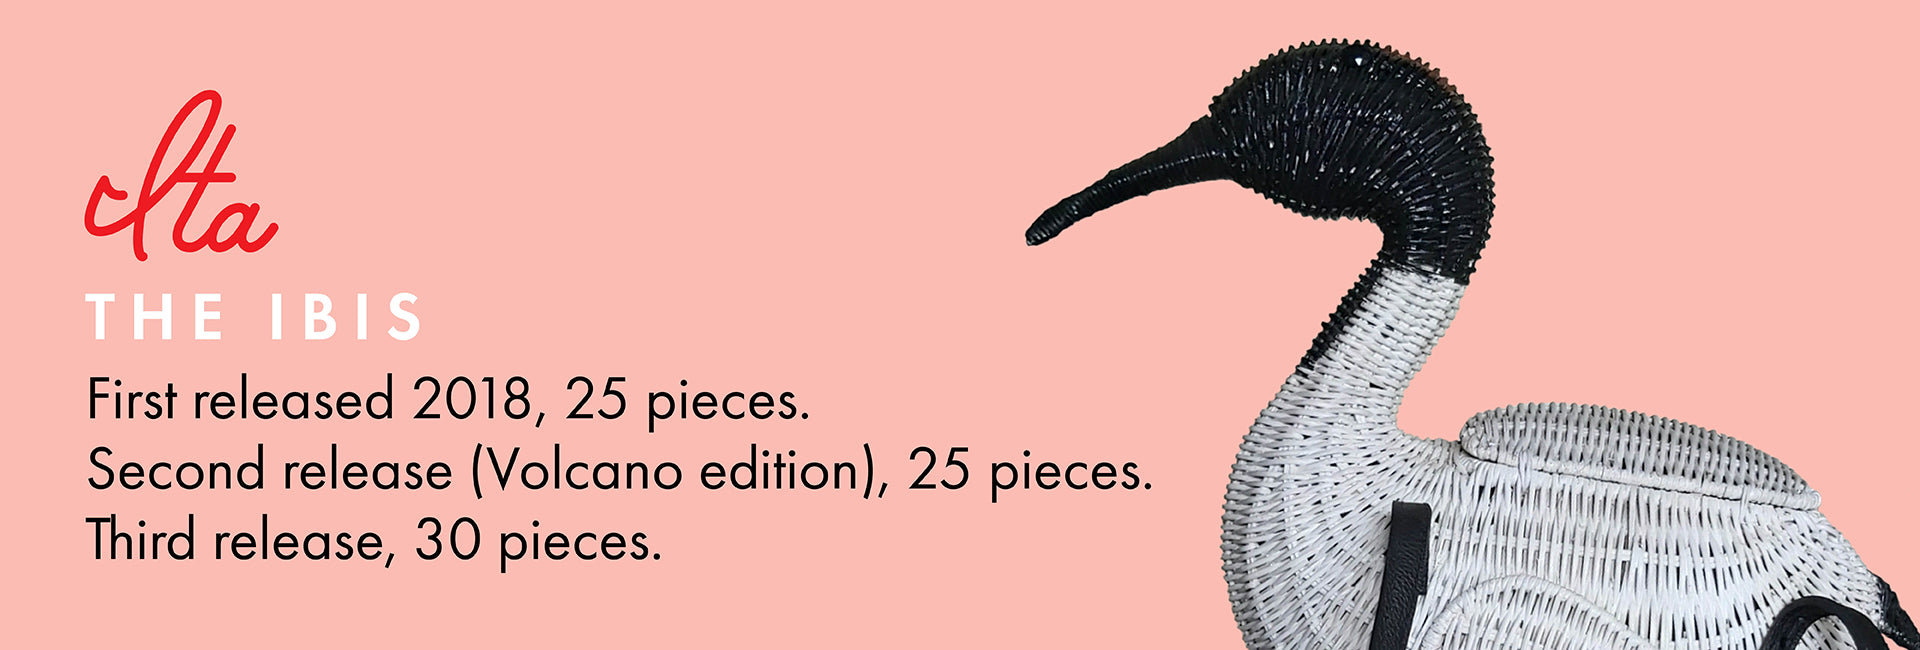 Ita the Ibis. First released 2018, 25 pieces.  Second release (Volcano edition), 25 pieces. Third release, 30 pieces.